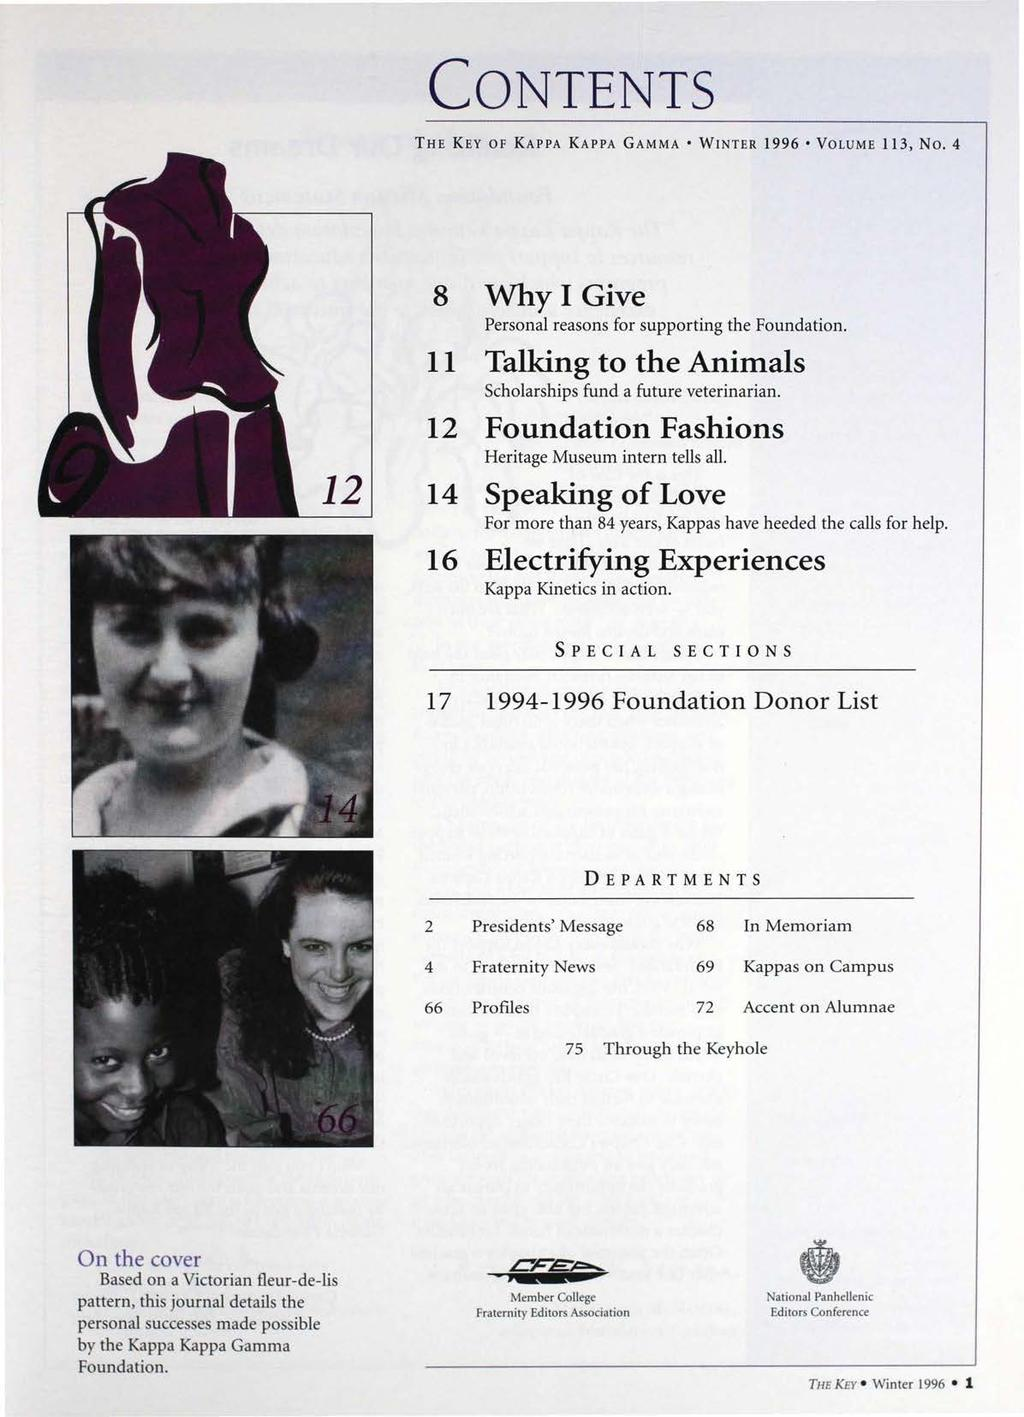 CONTENTS THE KEY OF KAPPA KAPPA GAMMA WNTER 1996 VOLUME 113, No.4 12 8 Why Give Personal reasons for supporting the Foundation. 11 Talking to the Animals Scholarships fund a future veterinarian.